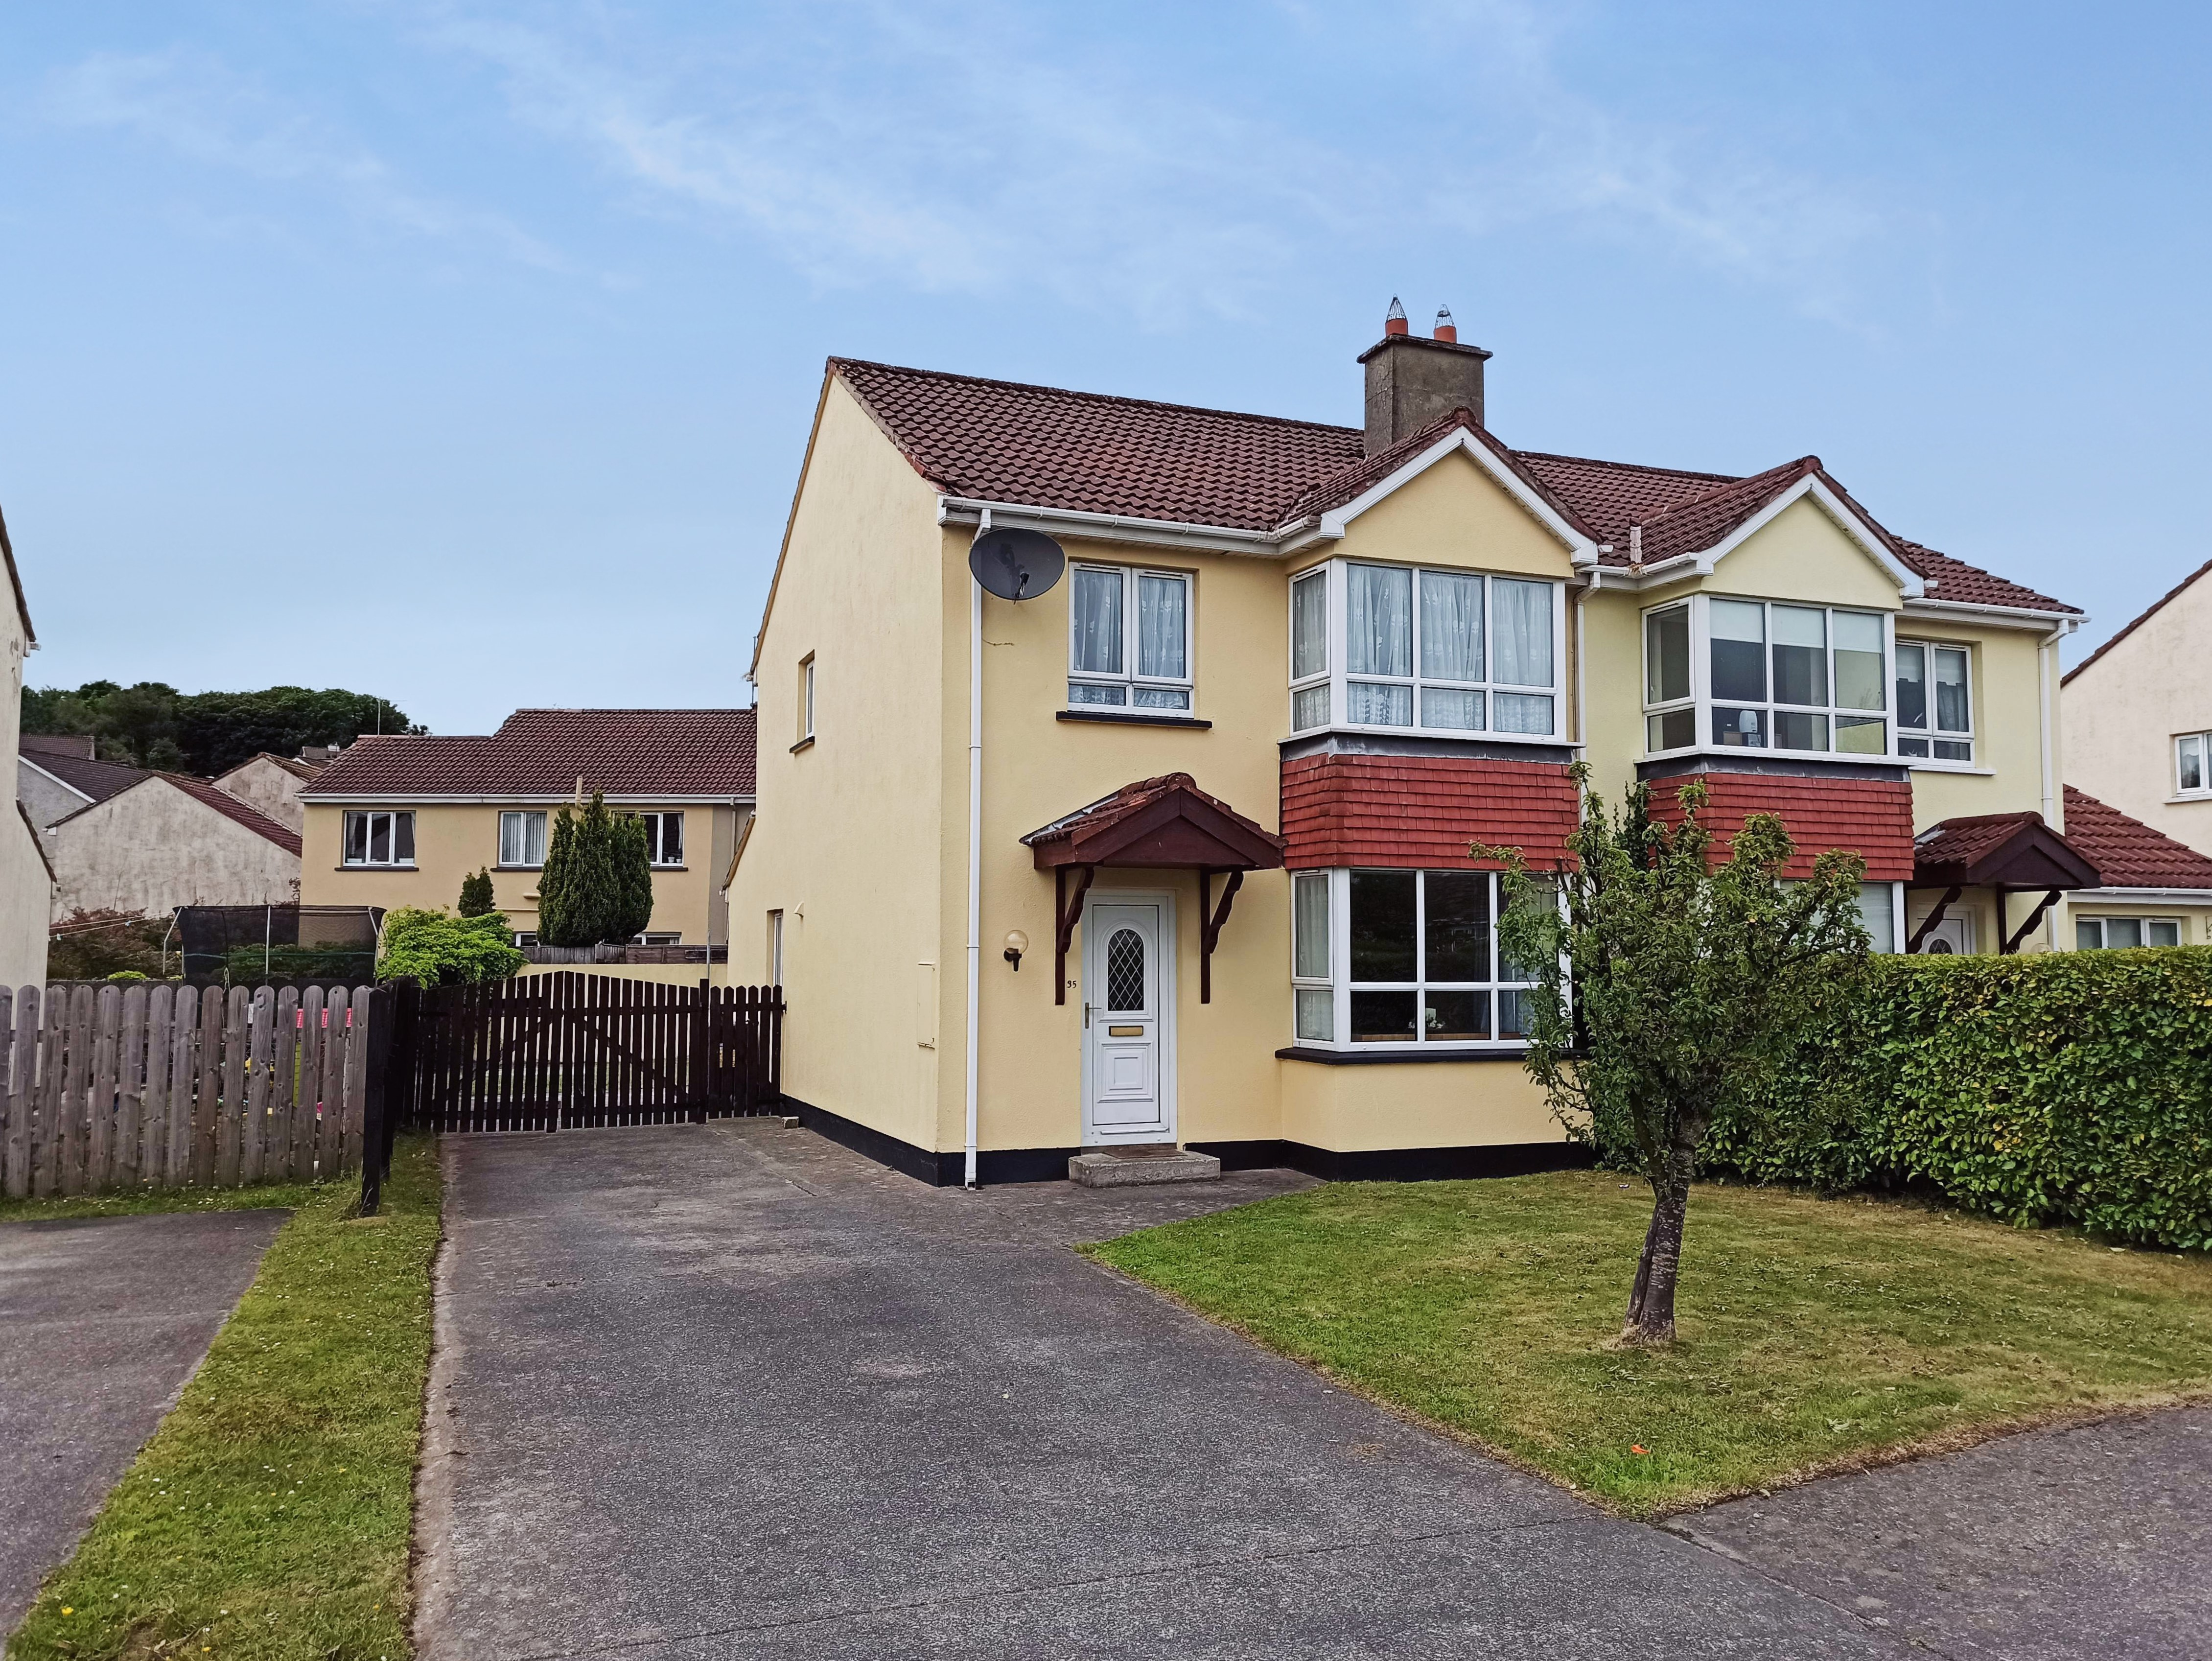 35 Park View Drive, Letterkenny, Co. Donegal, F92 D9H6